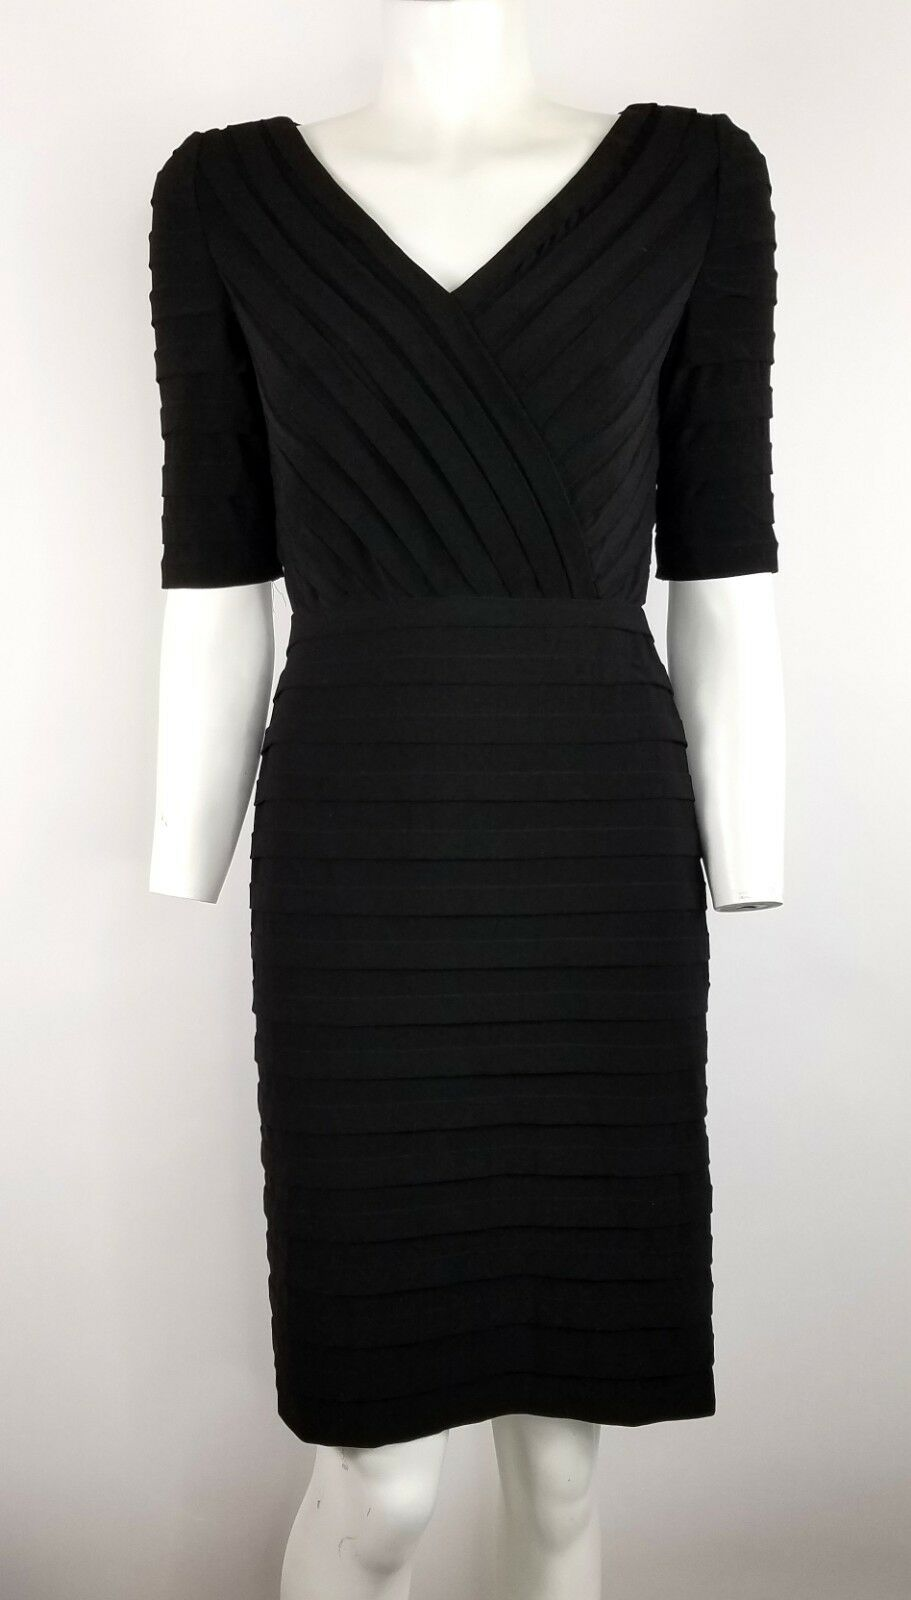 Adrianna Papell 8 Dress schwarz Short Sleeve Fully Lined Zip in Back